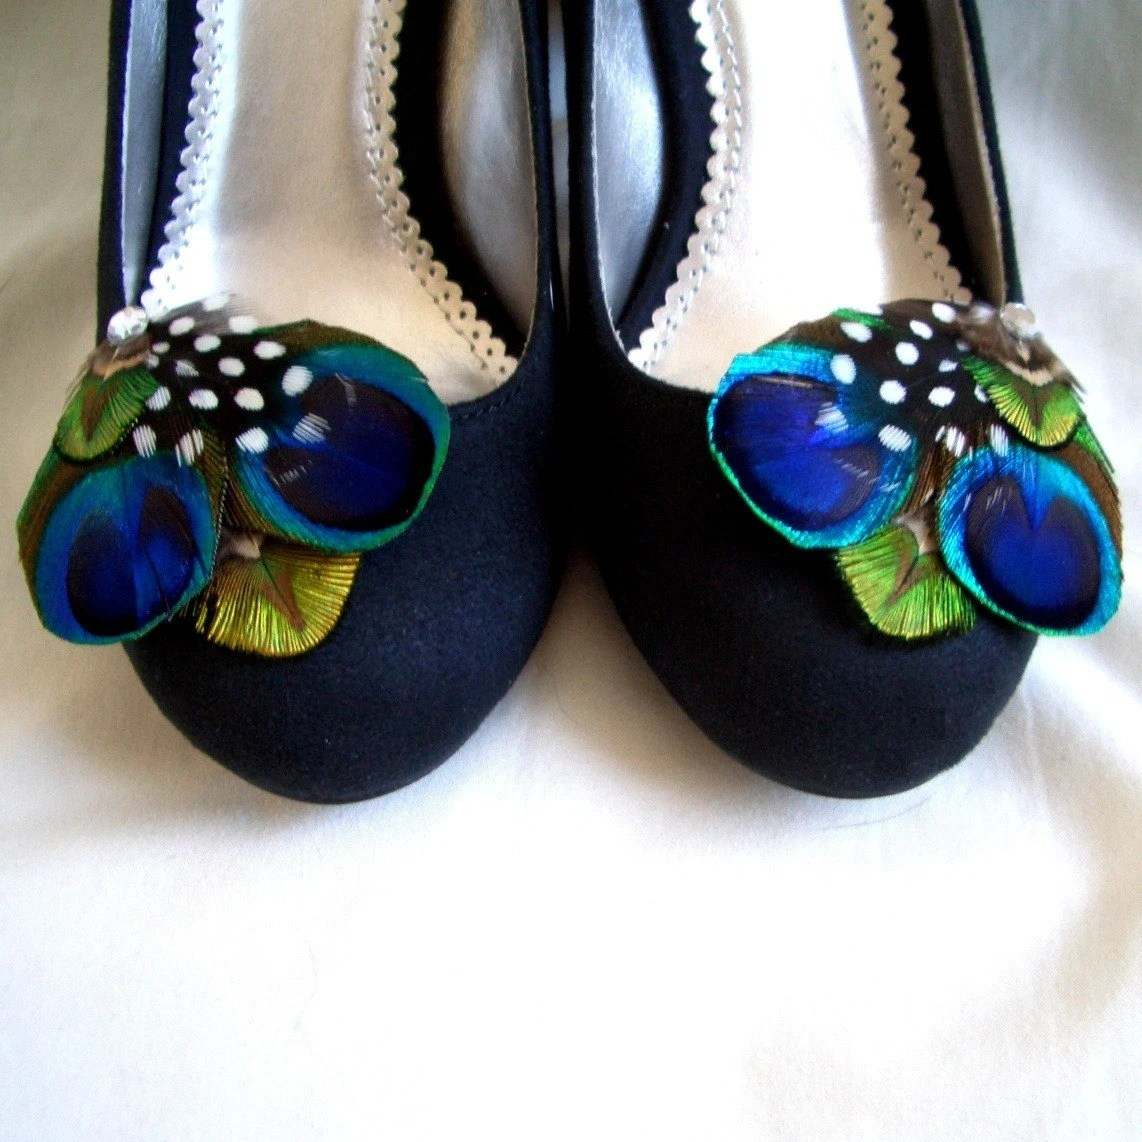 COCO SHOE CLIPS - 1 Pair of Peacock Feather Shoe Clips